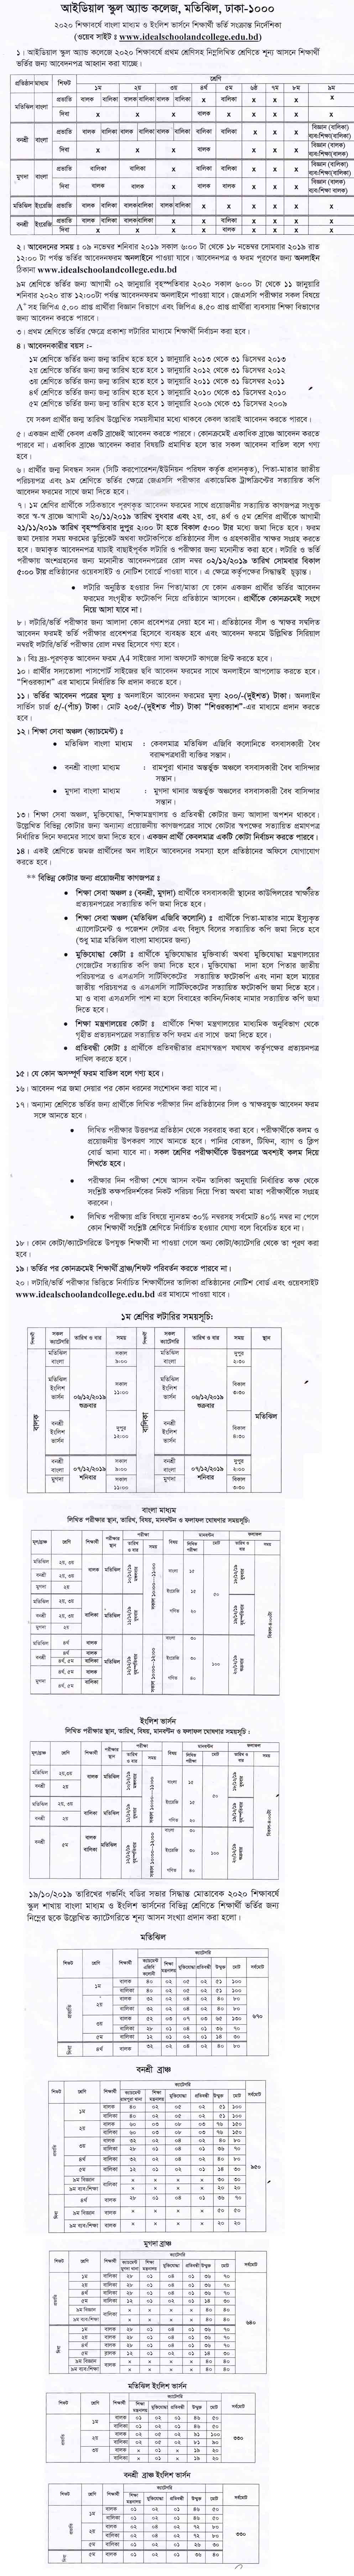 Ideal school college admission circular-2020